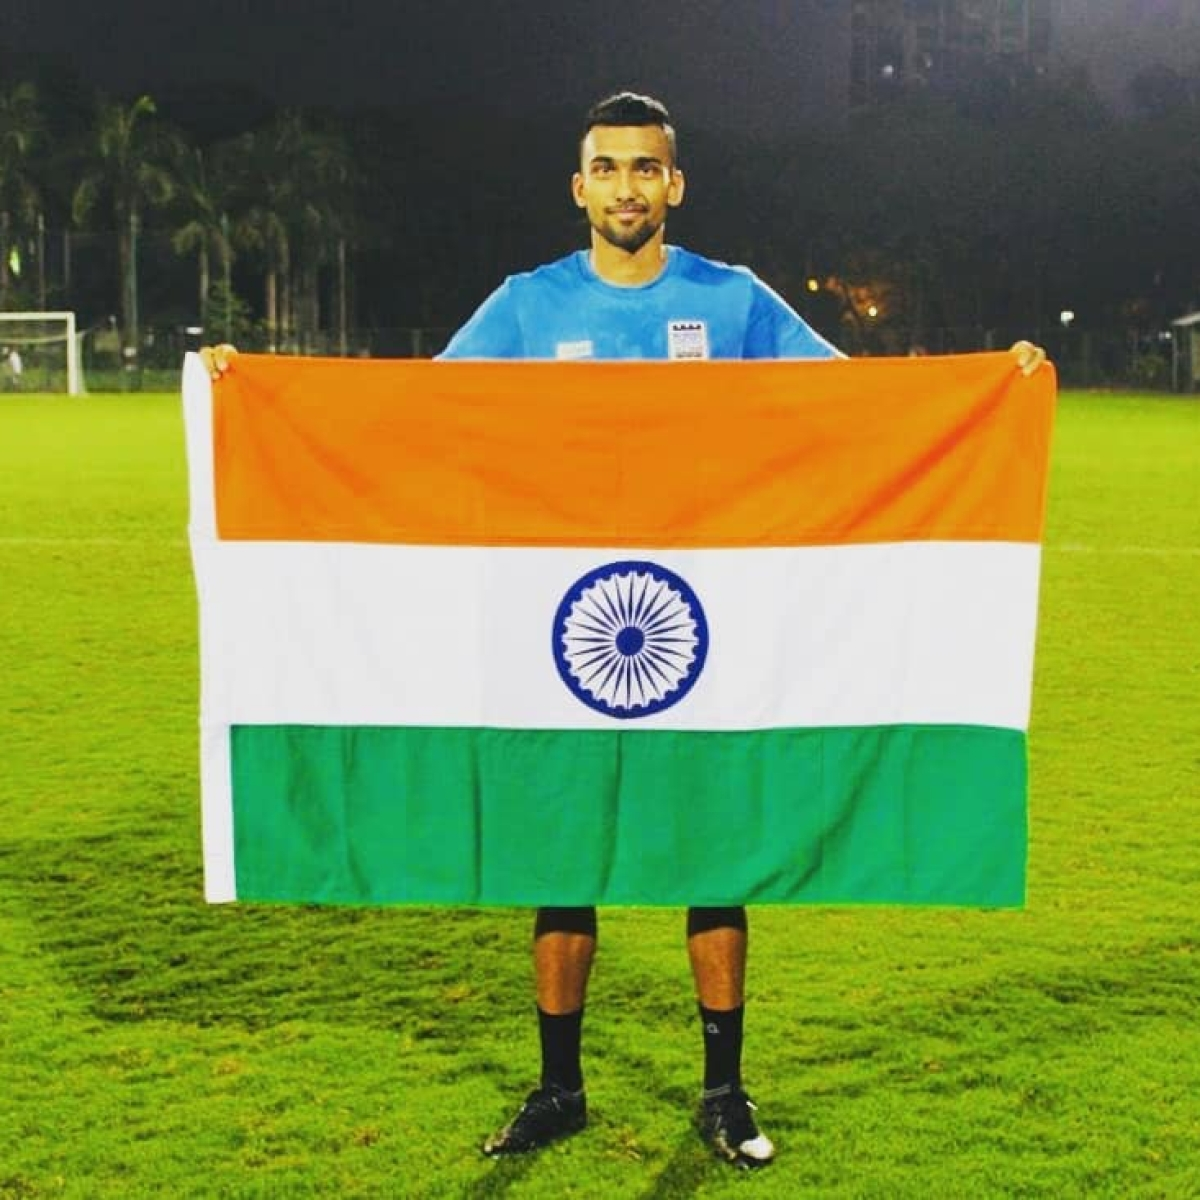 With more exposure to European football in the ISL, Mumbai City FC's Sarthak Golui cannot wait to get back on field after lockdown